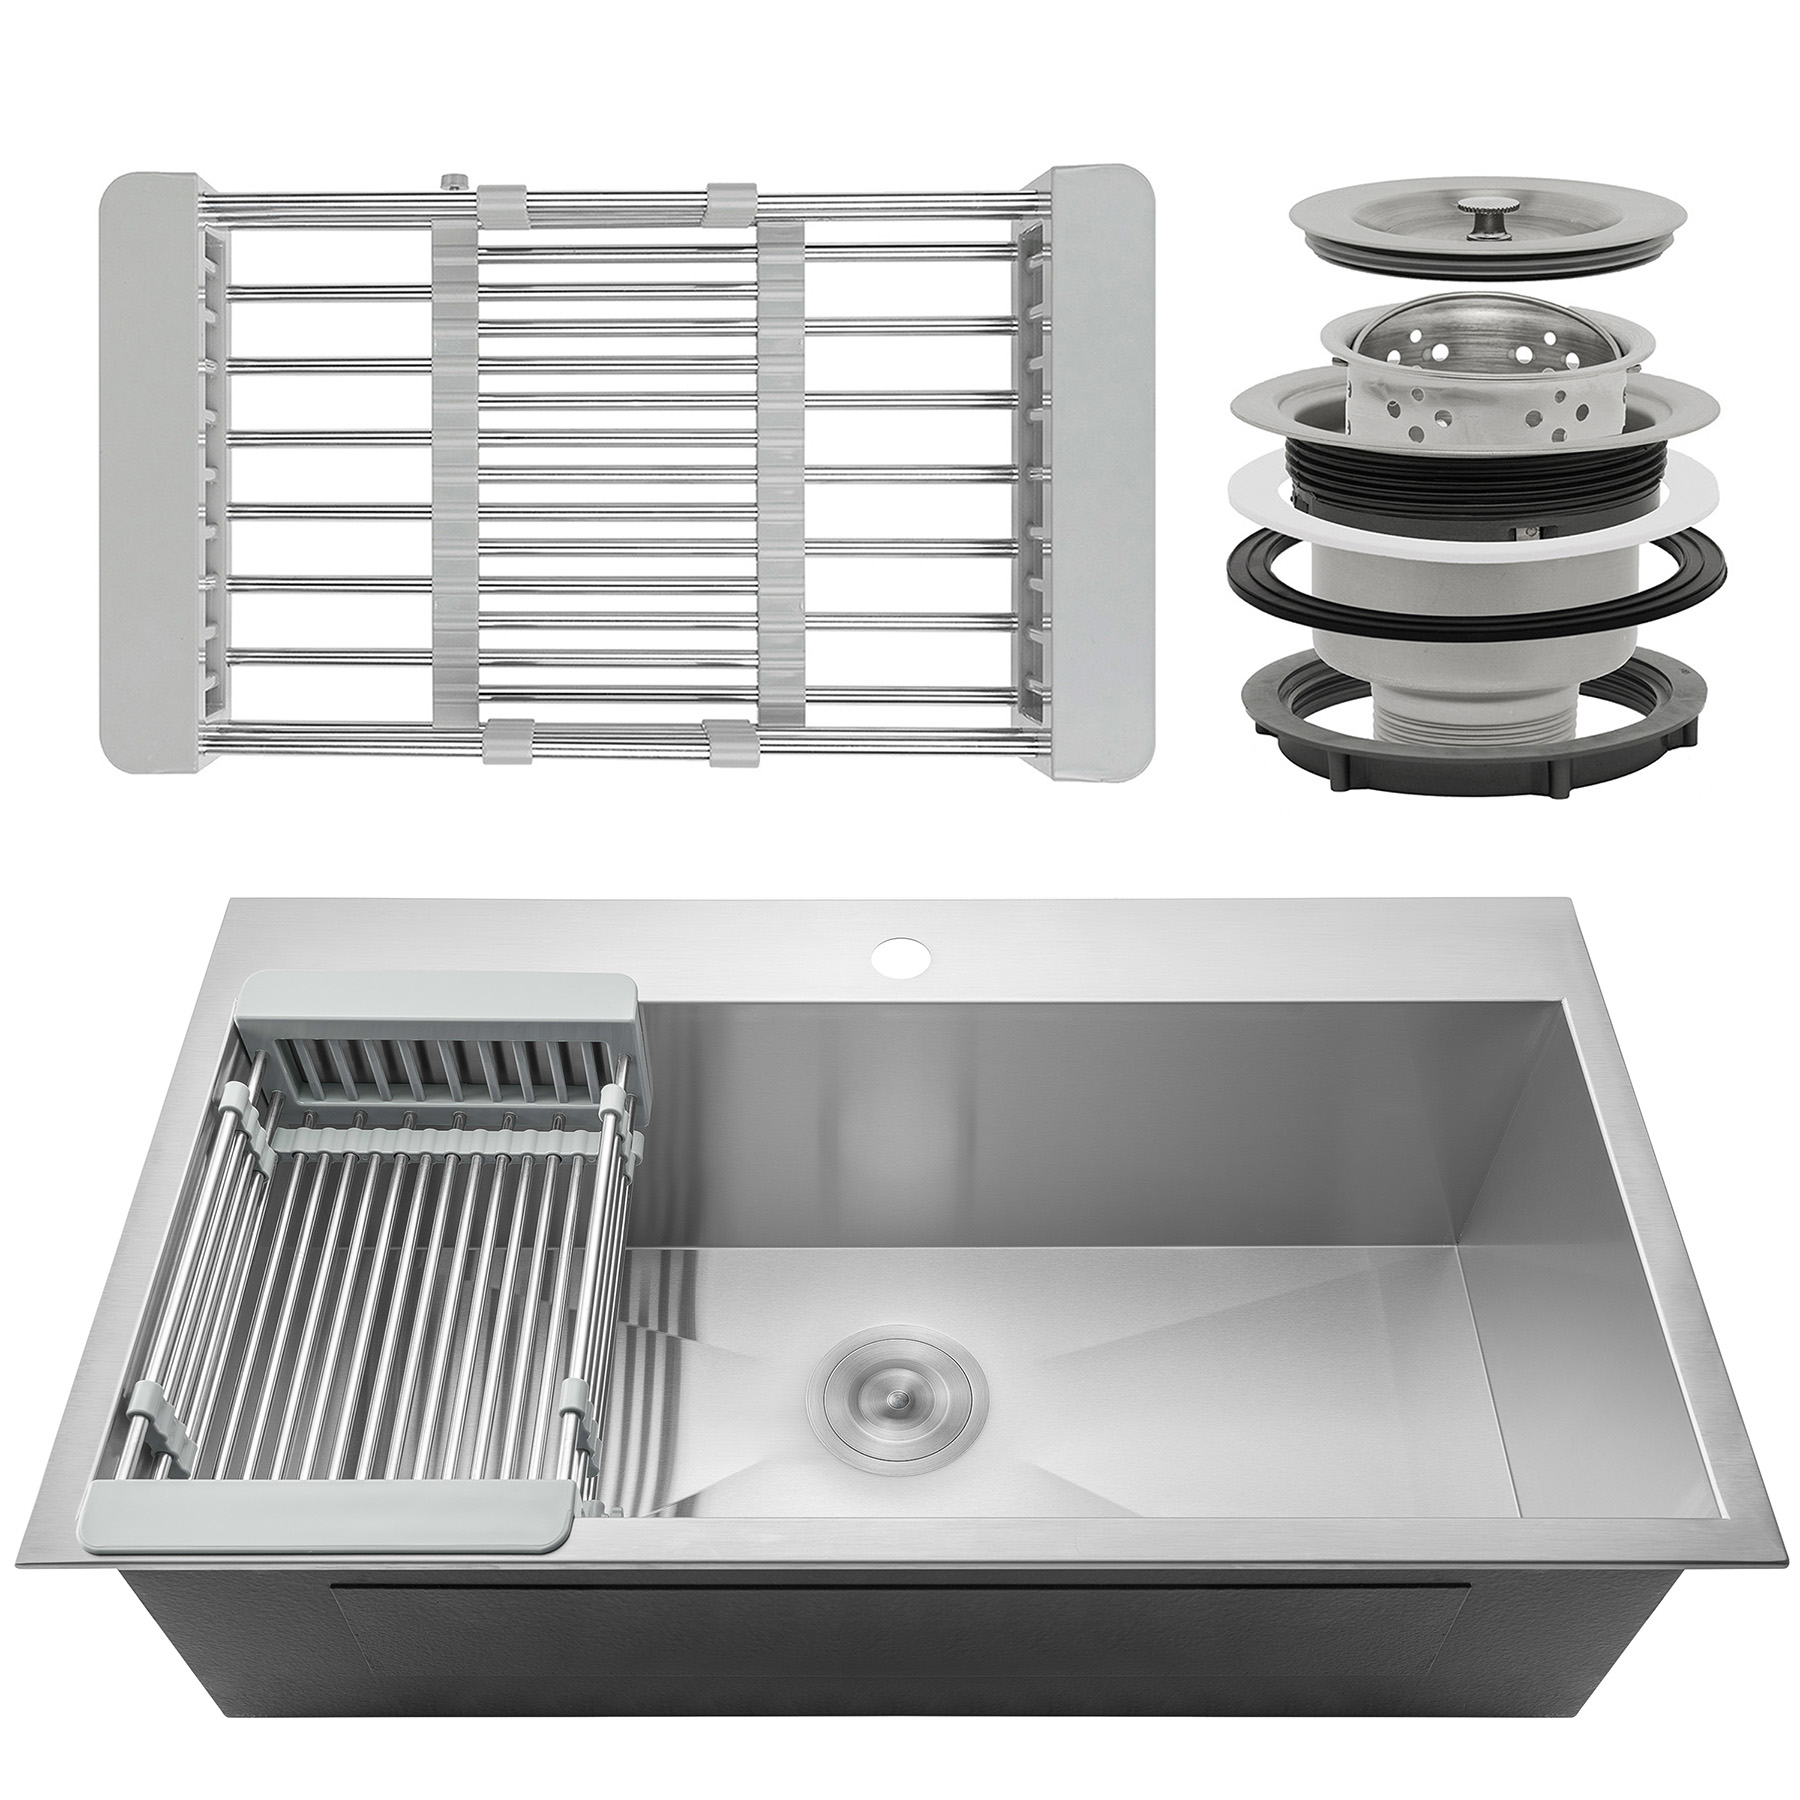 "Image of AKDY 33"" x 22"" x 9"" Stainless Steel Top Mount Kitchen Sink 18 Gauge Single Basin w/ Tray Strainer Kit"